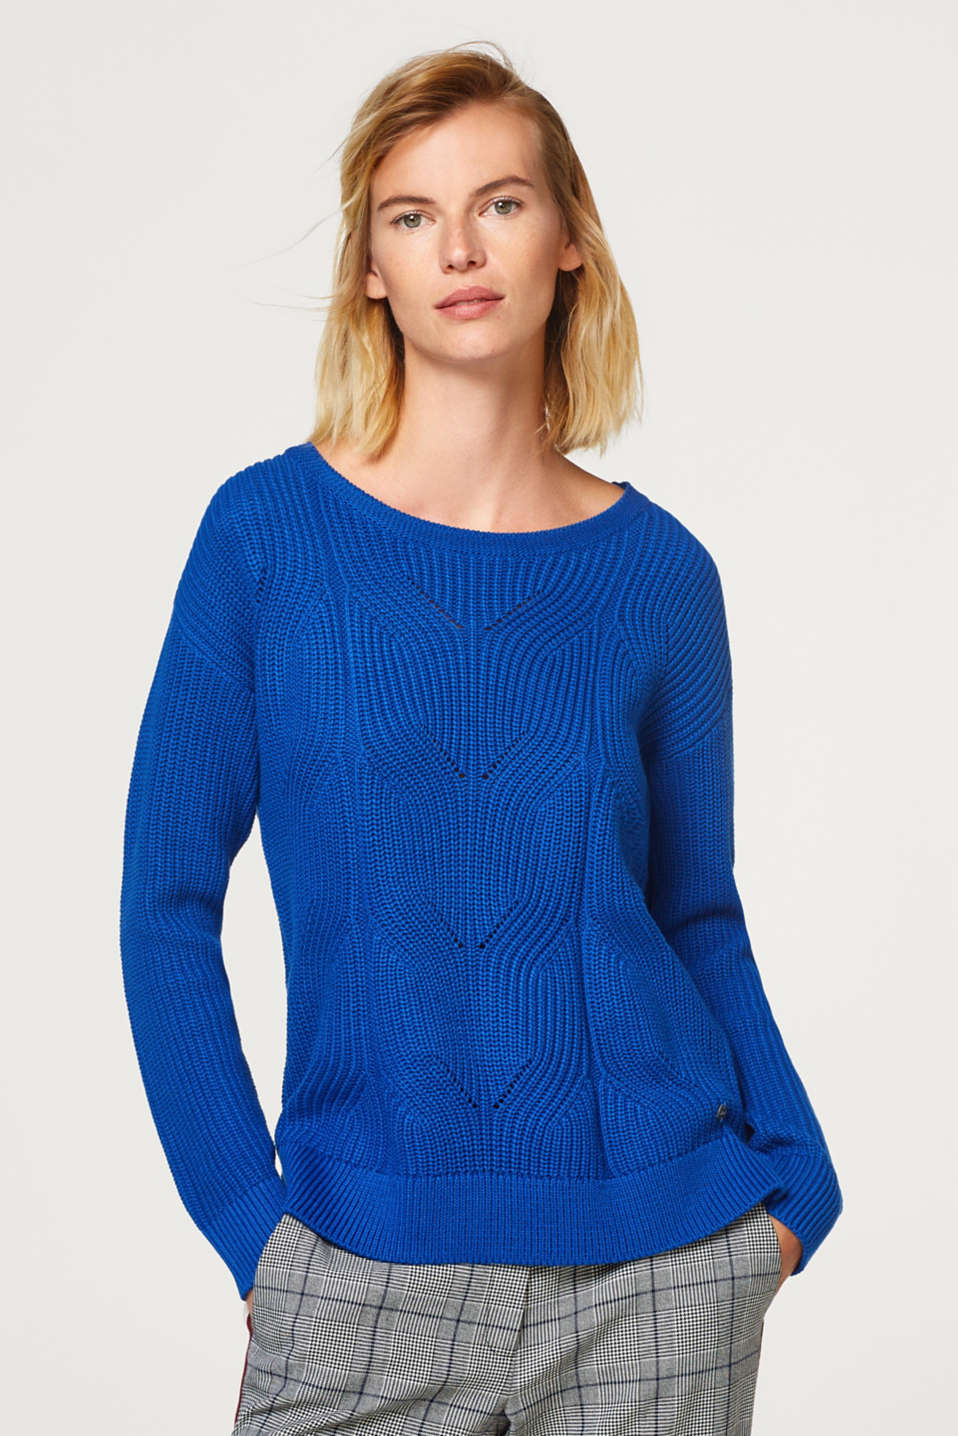 Esprit - Knit jumper with a textured pattern